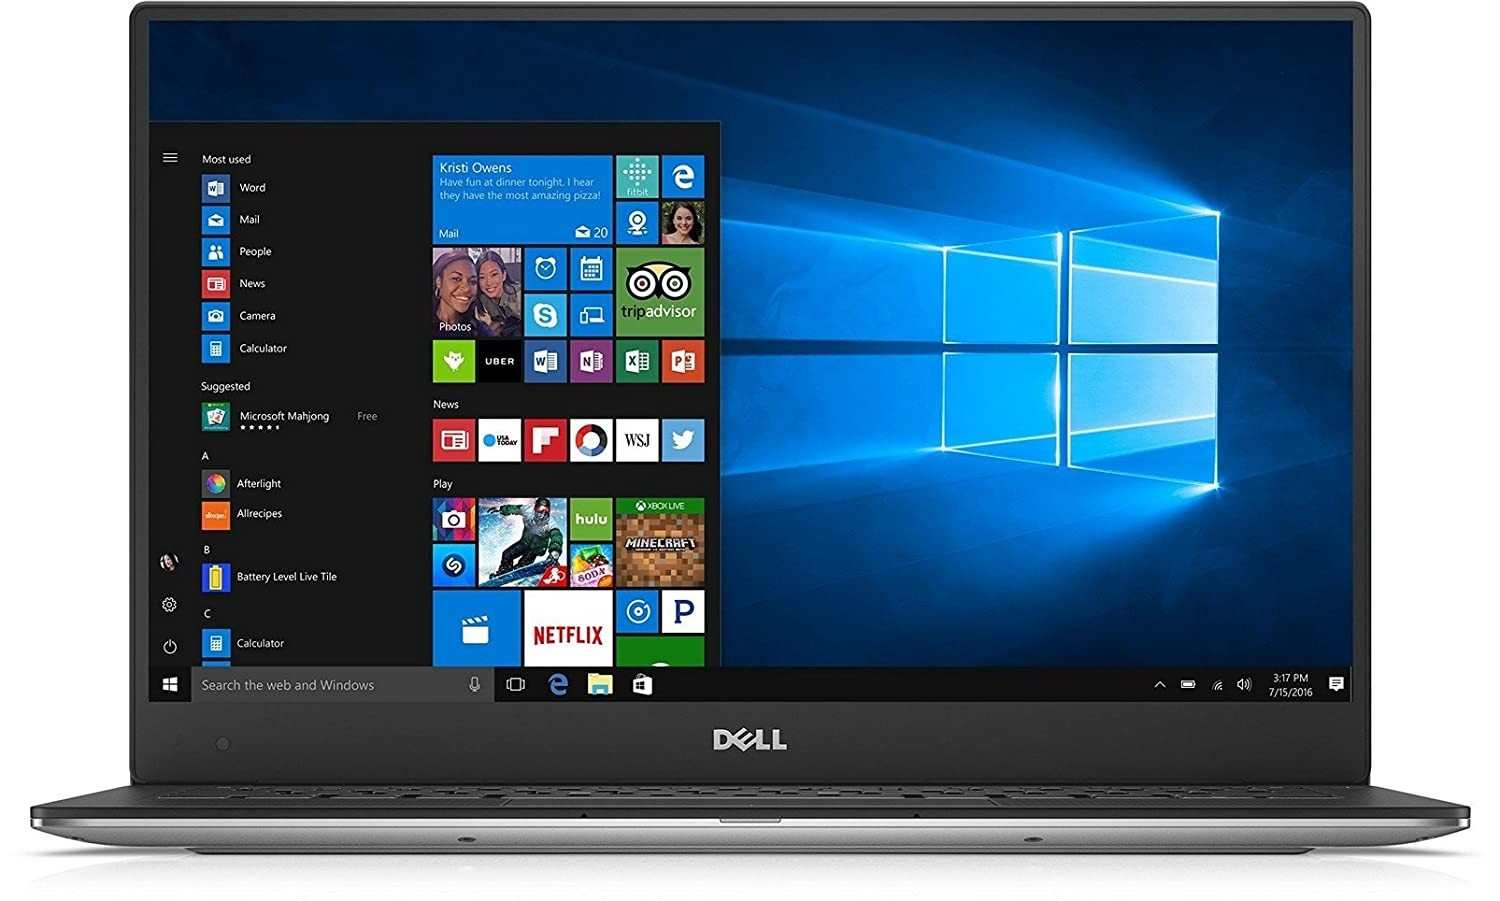 Refurbished laptops & desktops - Refurbished Dell XPS 13 - 9360/Intel 8th Gen Ci5-8250U/13.3 inch FHD/256GB SSD/8GB/Int/Win 10 Home